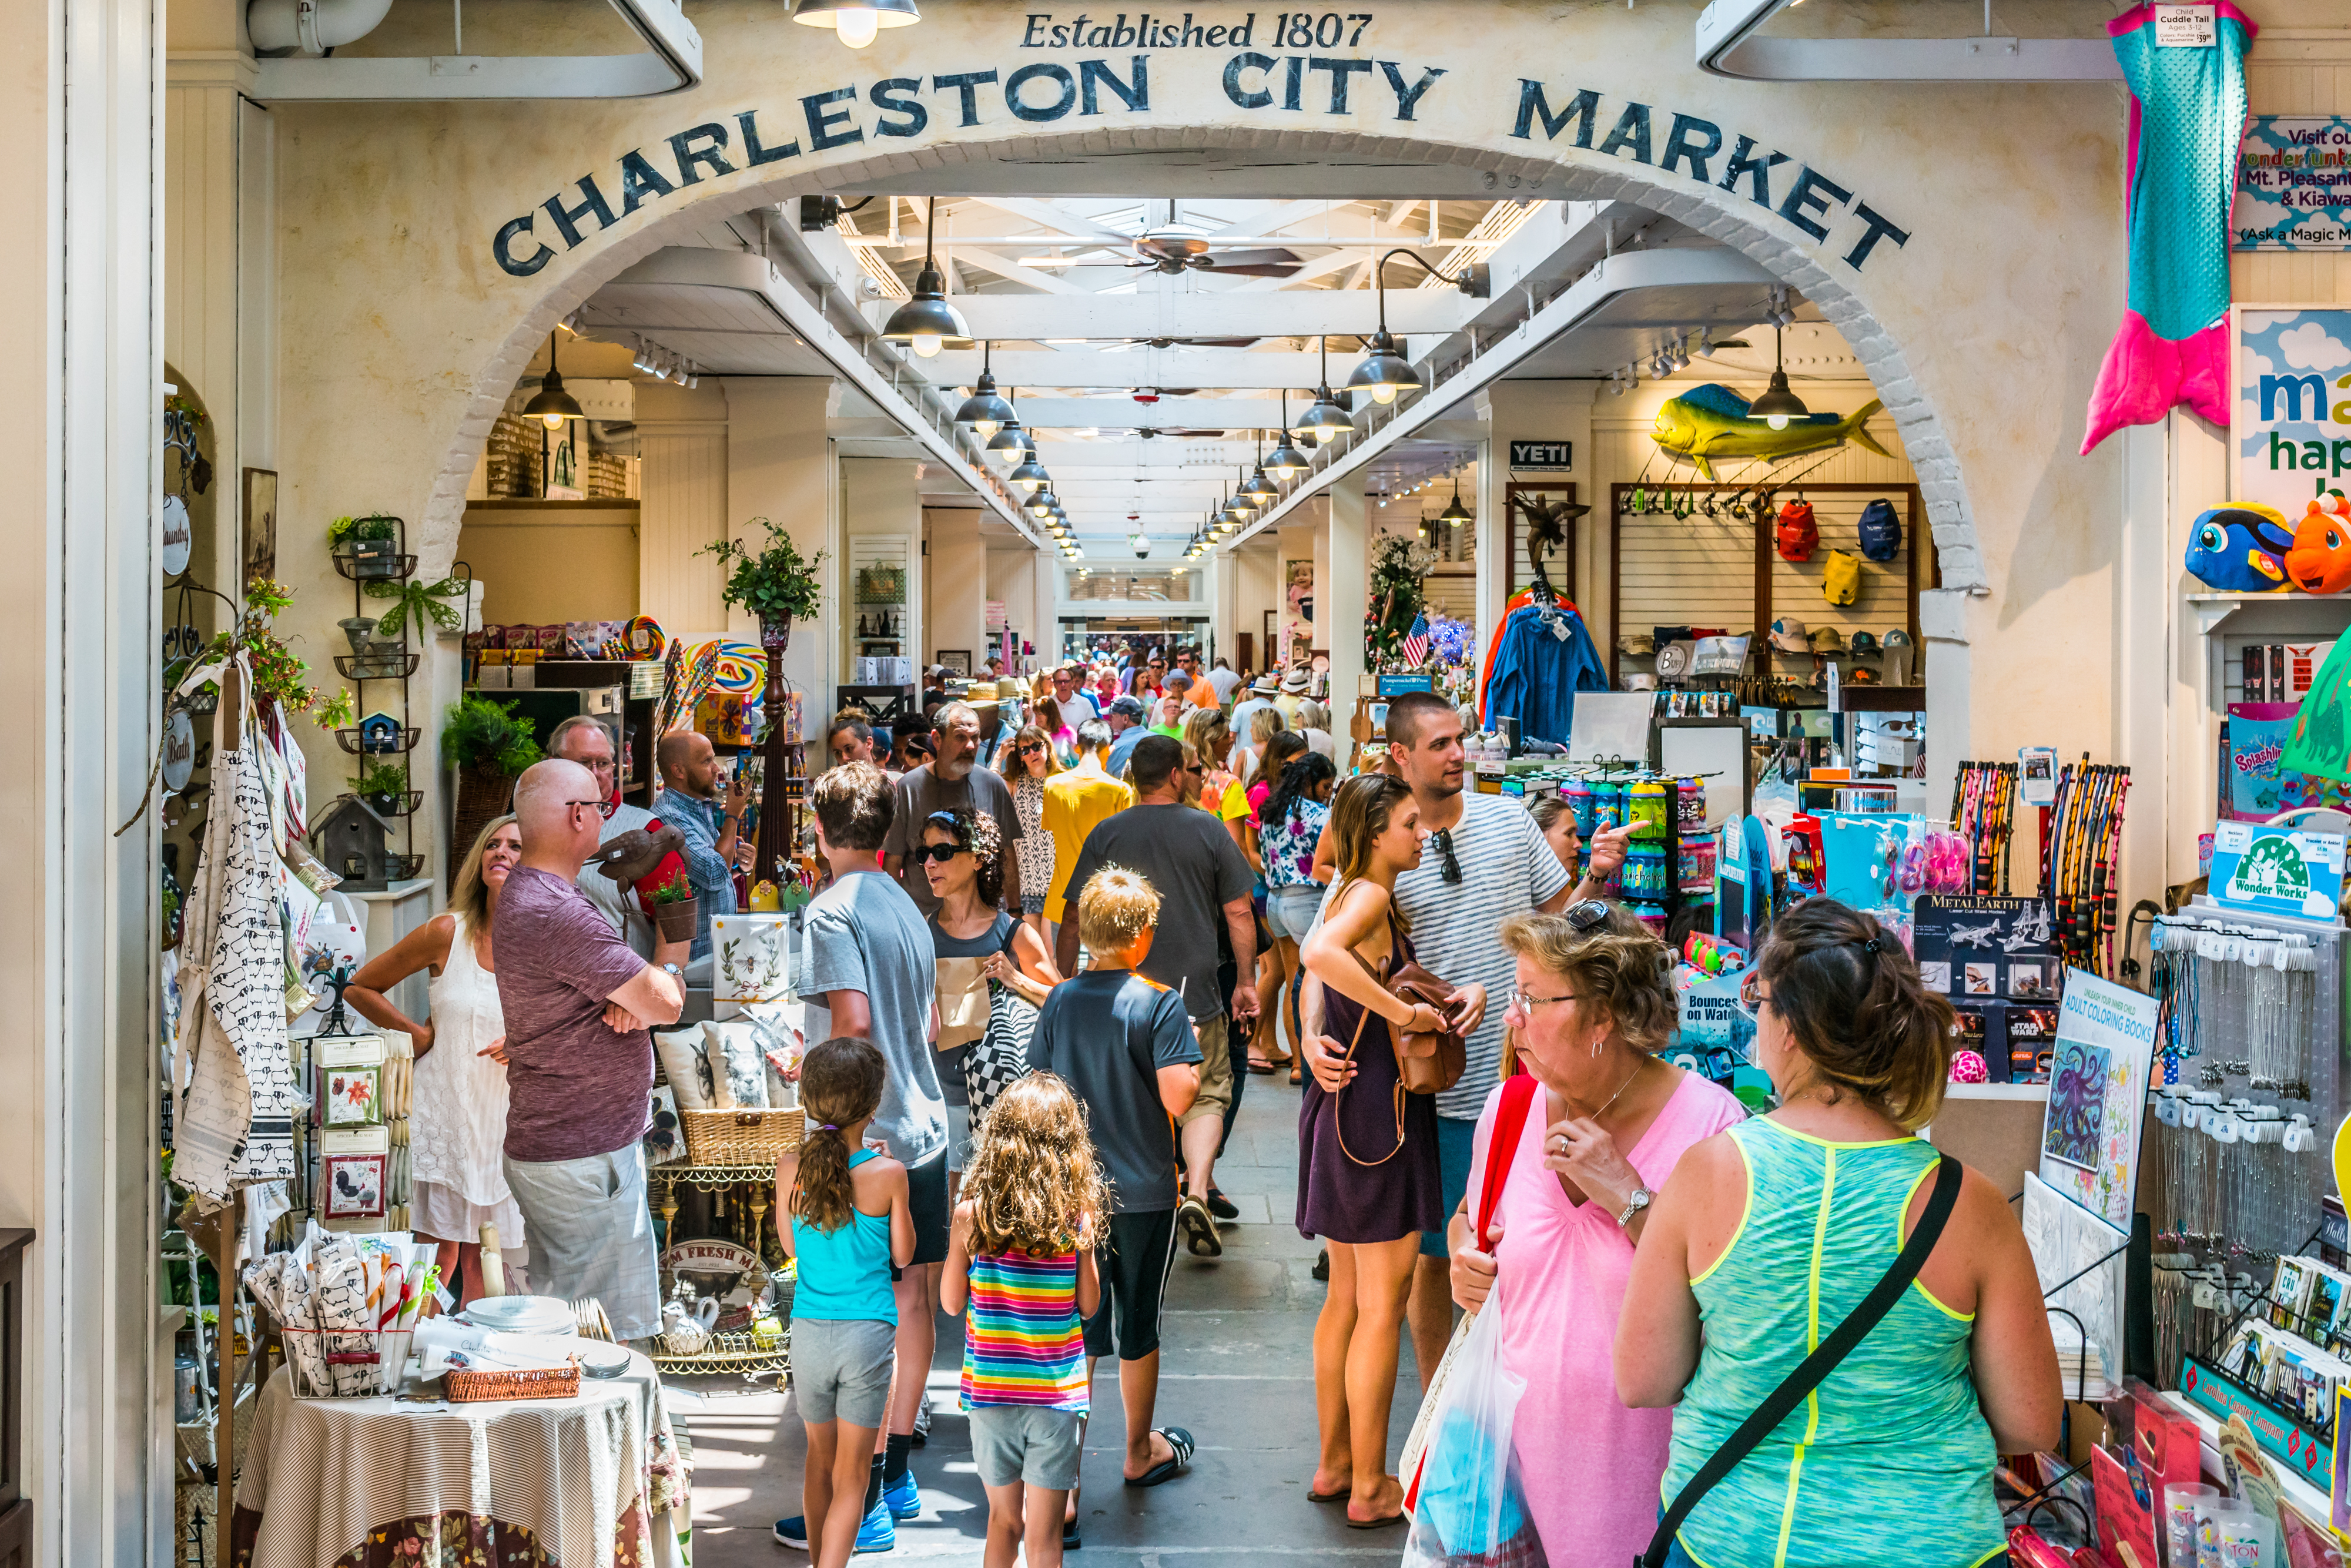 City Market Charleston Outdoor Activities things to do Vacation